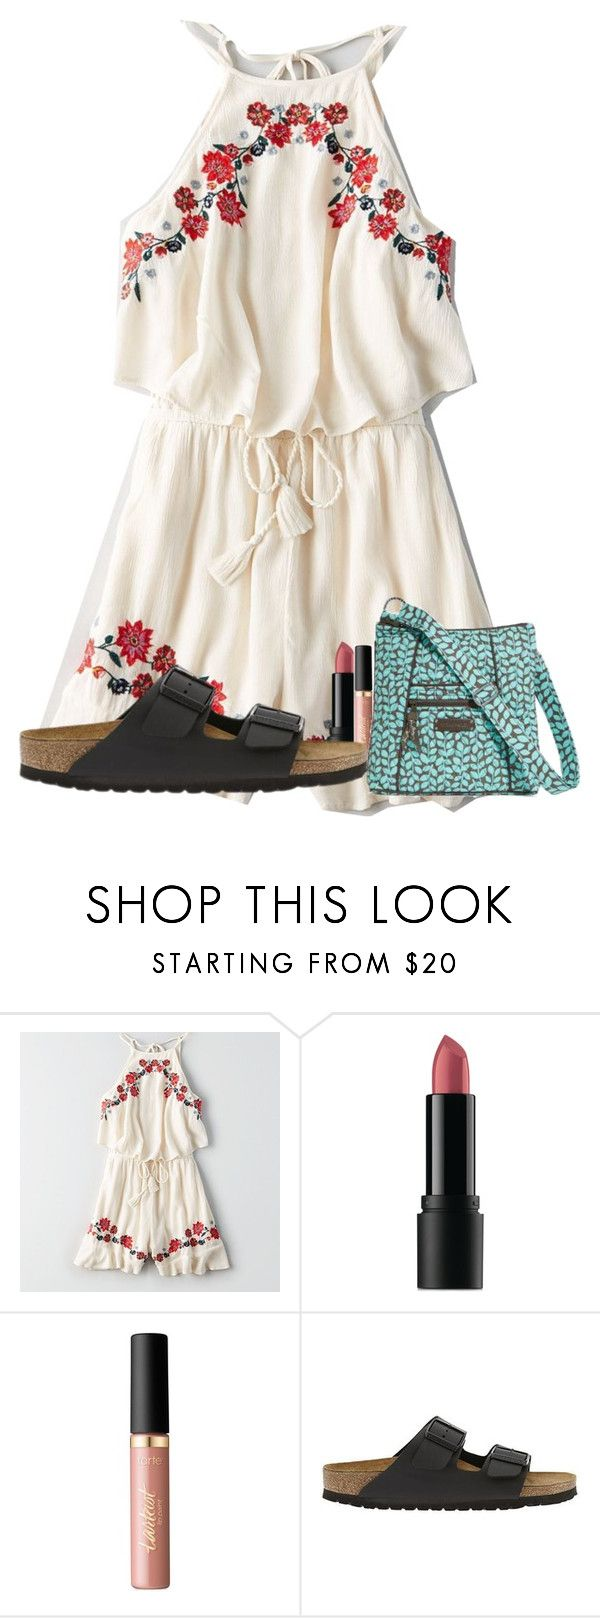 """--come alive--"" by lorla3407 on Polyvore featuring American Eagle Outfitters, Bare Escentuals, tarte, Birkenstock and Vera Bradley"